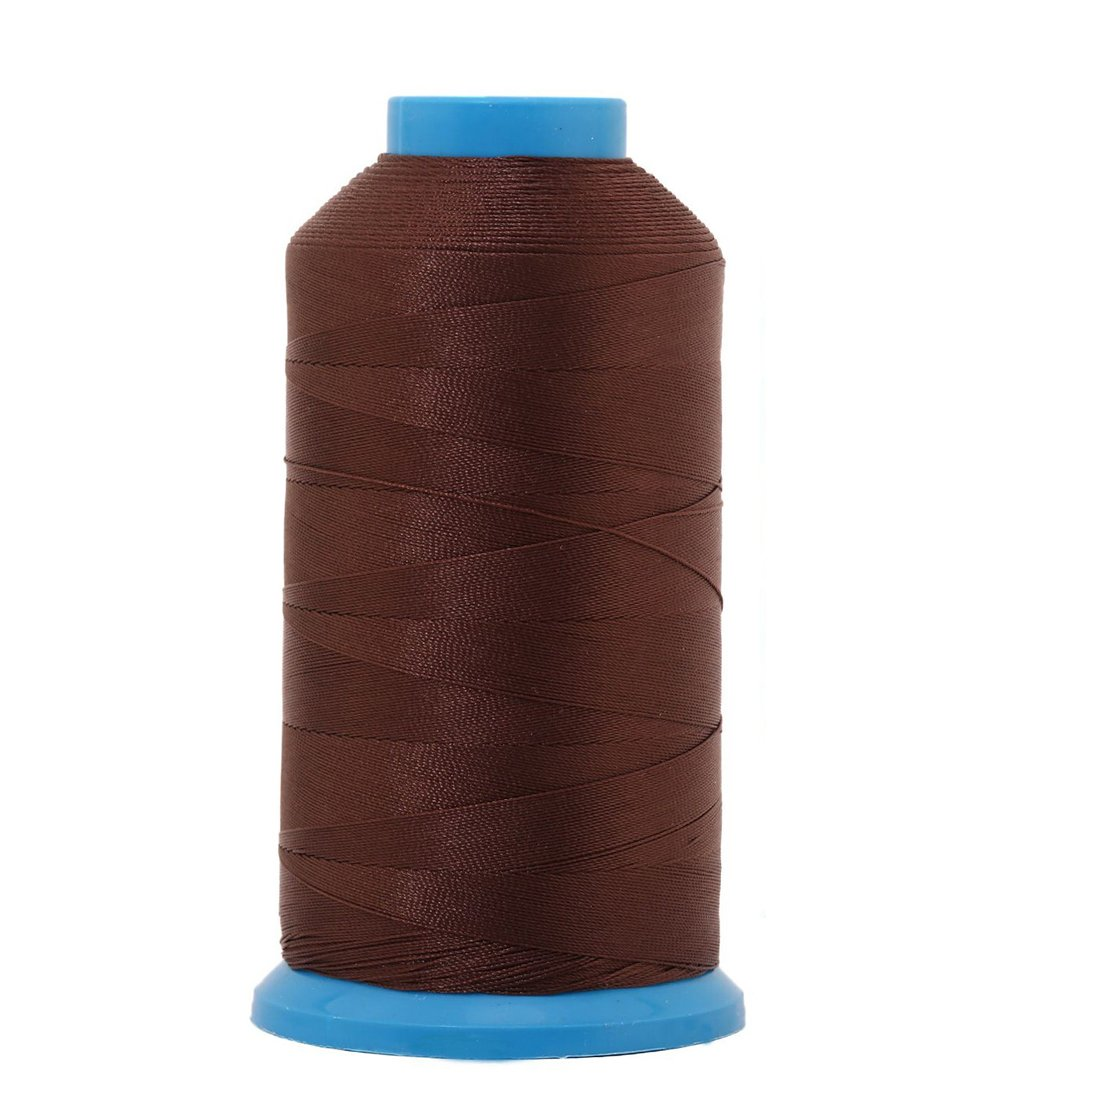 Yoker Bonded Nylon Sewing Thread 1500 Yard Size T70#69 Works with All Embroidery Machines Leather Bag Shoes Canvas Brown